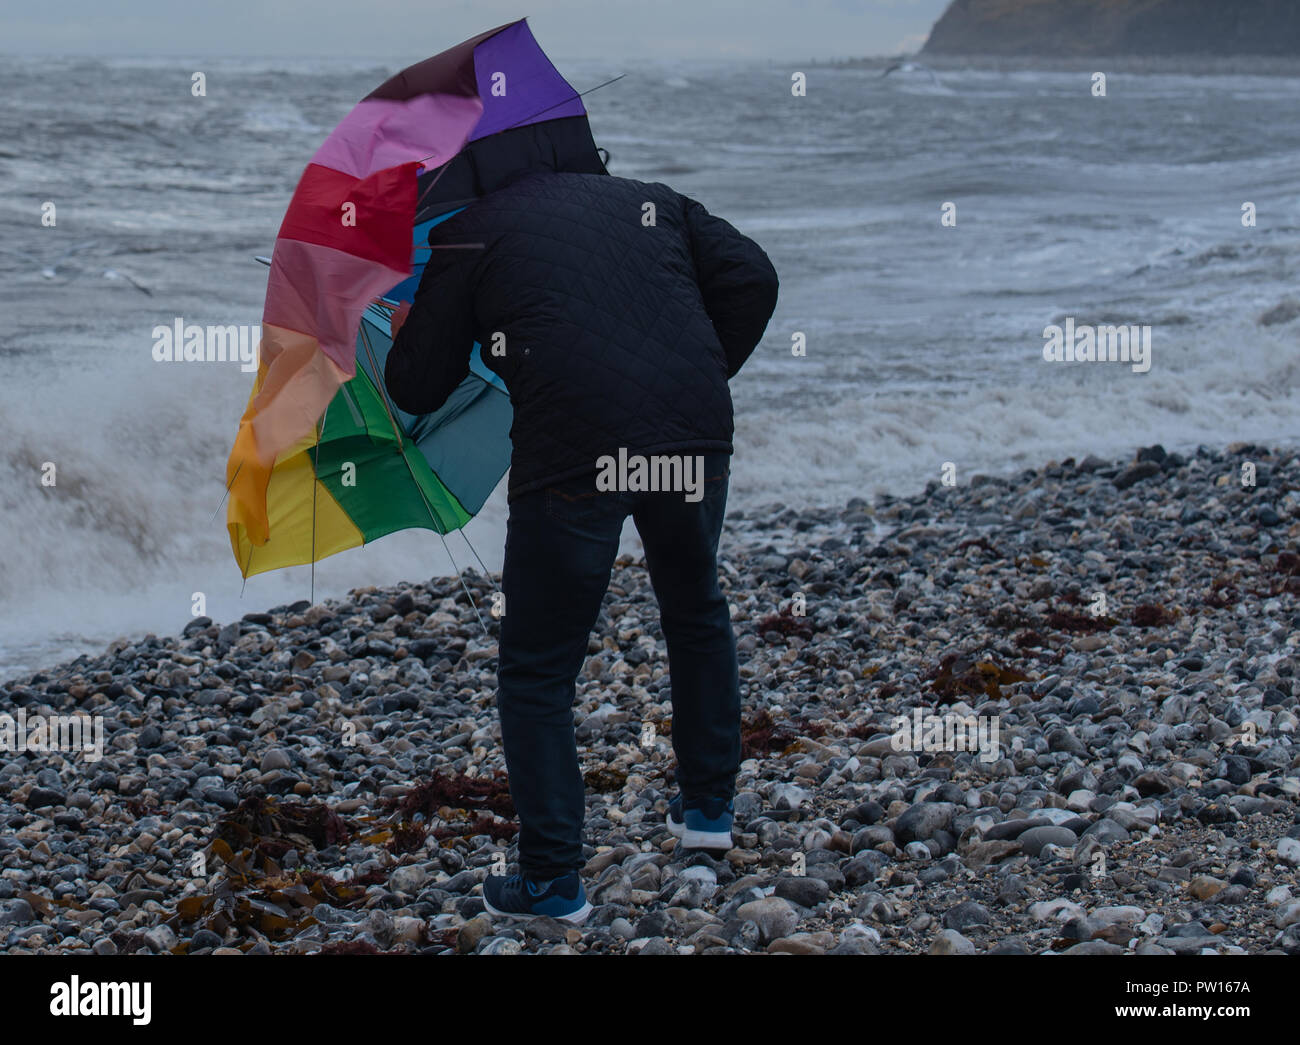 Lyme Regis, Dorset, UK. 11th October 2018.  UK Weather:   A man battles with an umbrella on the beach as gusty high winds and outbreaks of rain hit the coastal resort of Lyme Regis ahead of Storm Callum.  Credit: Celia McMahon/Alamy Live News - Stock Image